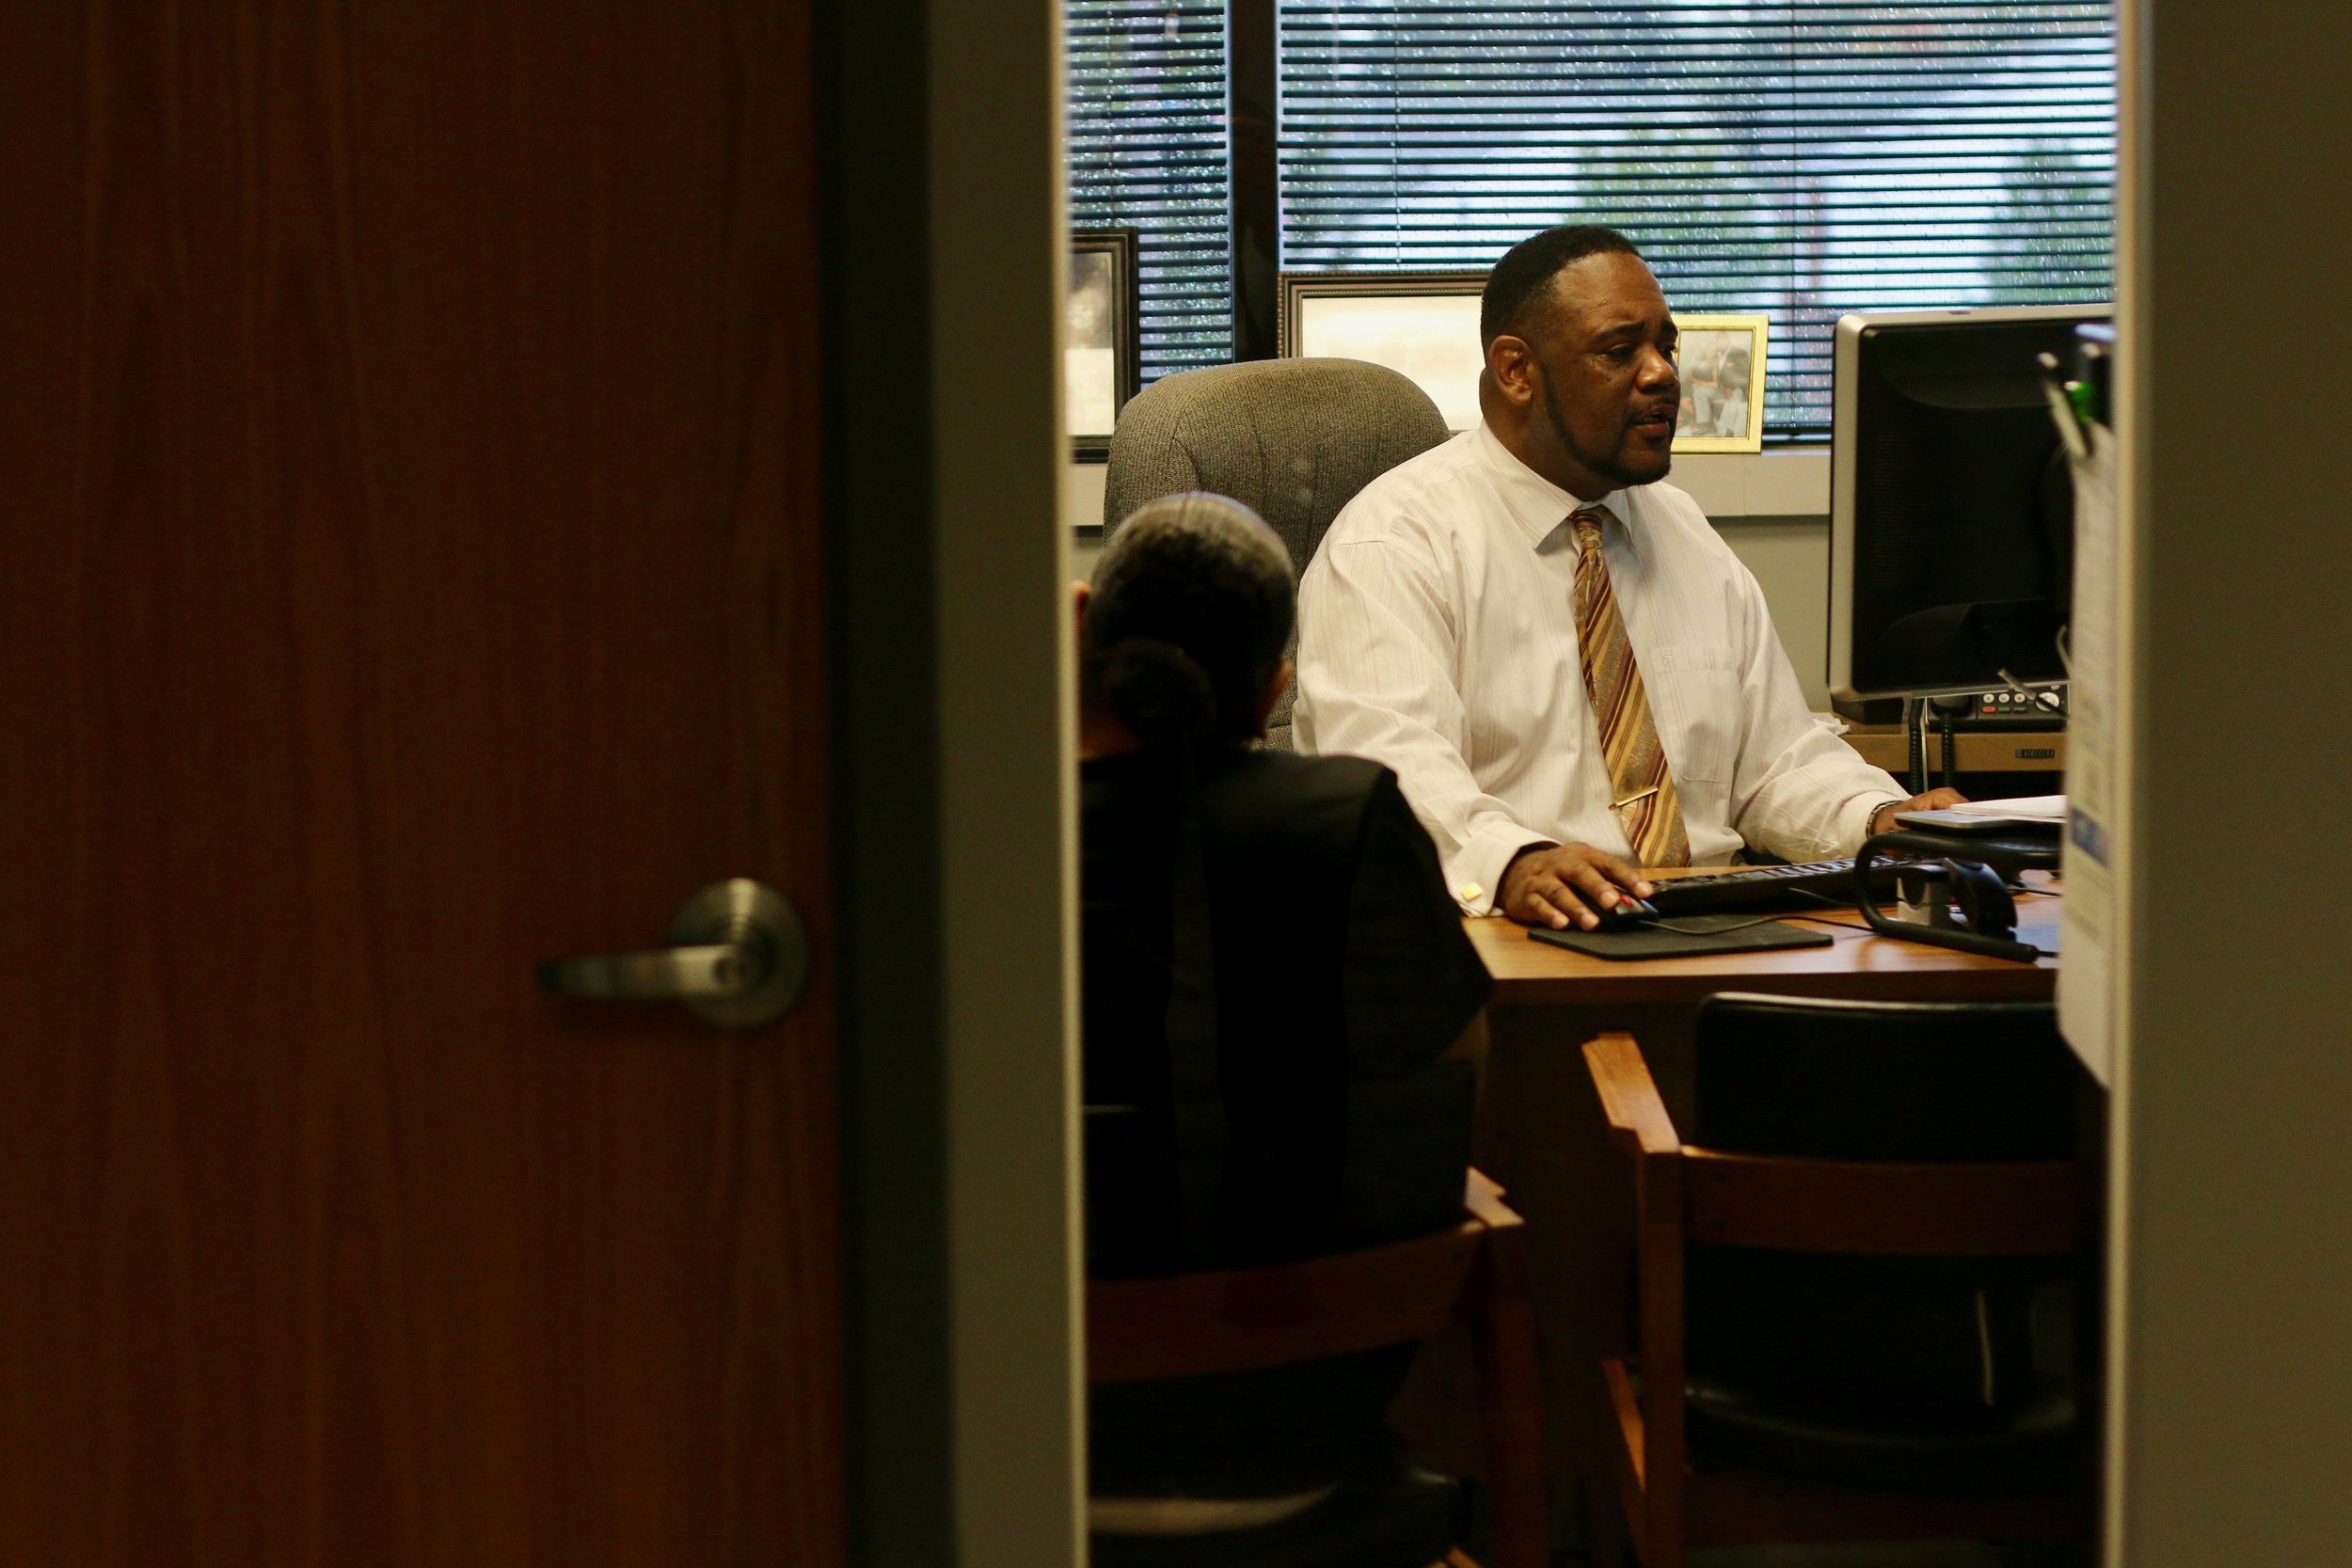 Homeport Counselor Kerrick Jackson meets with Save The Dream client.